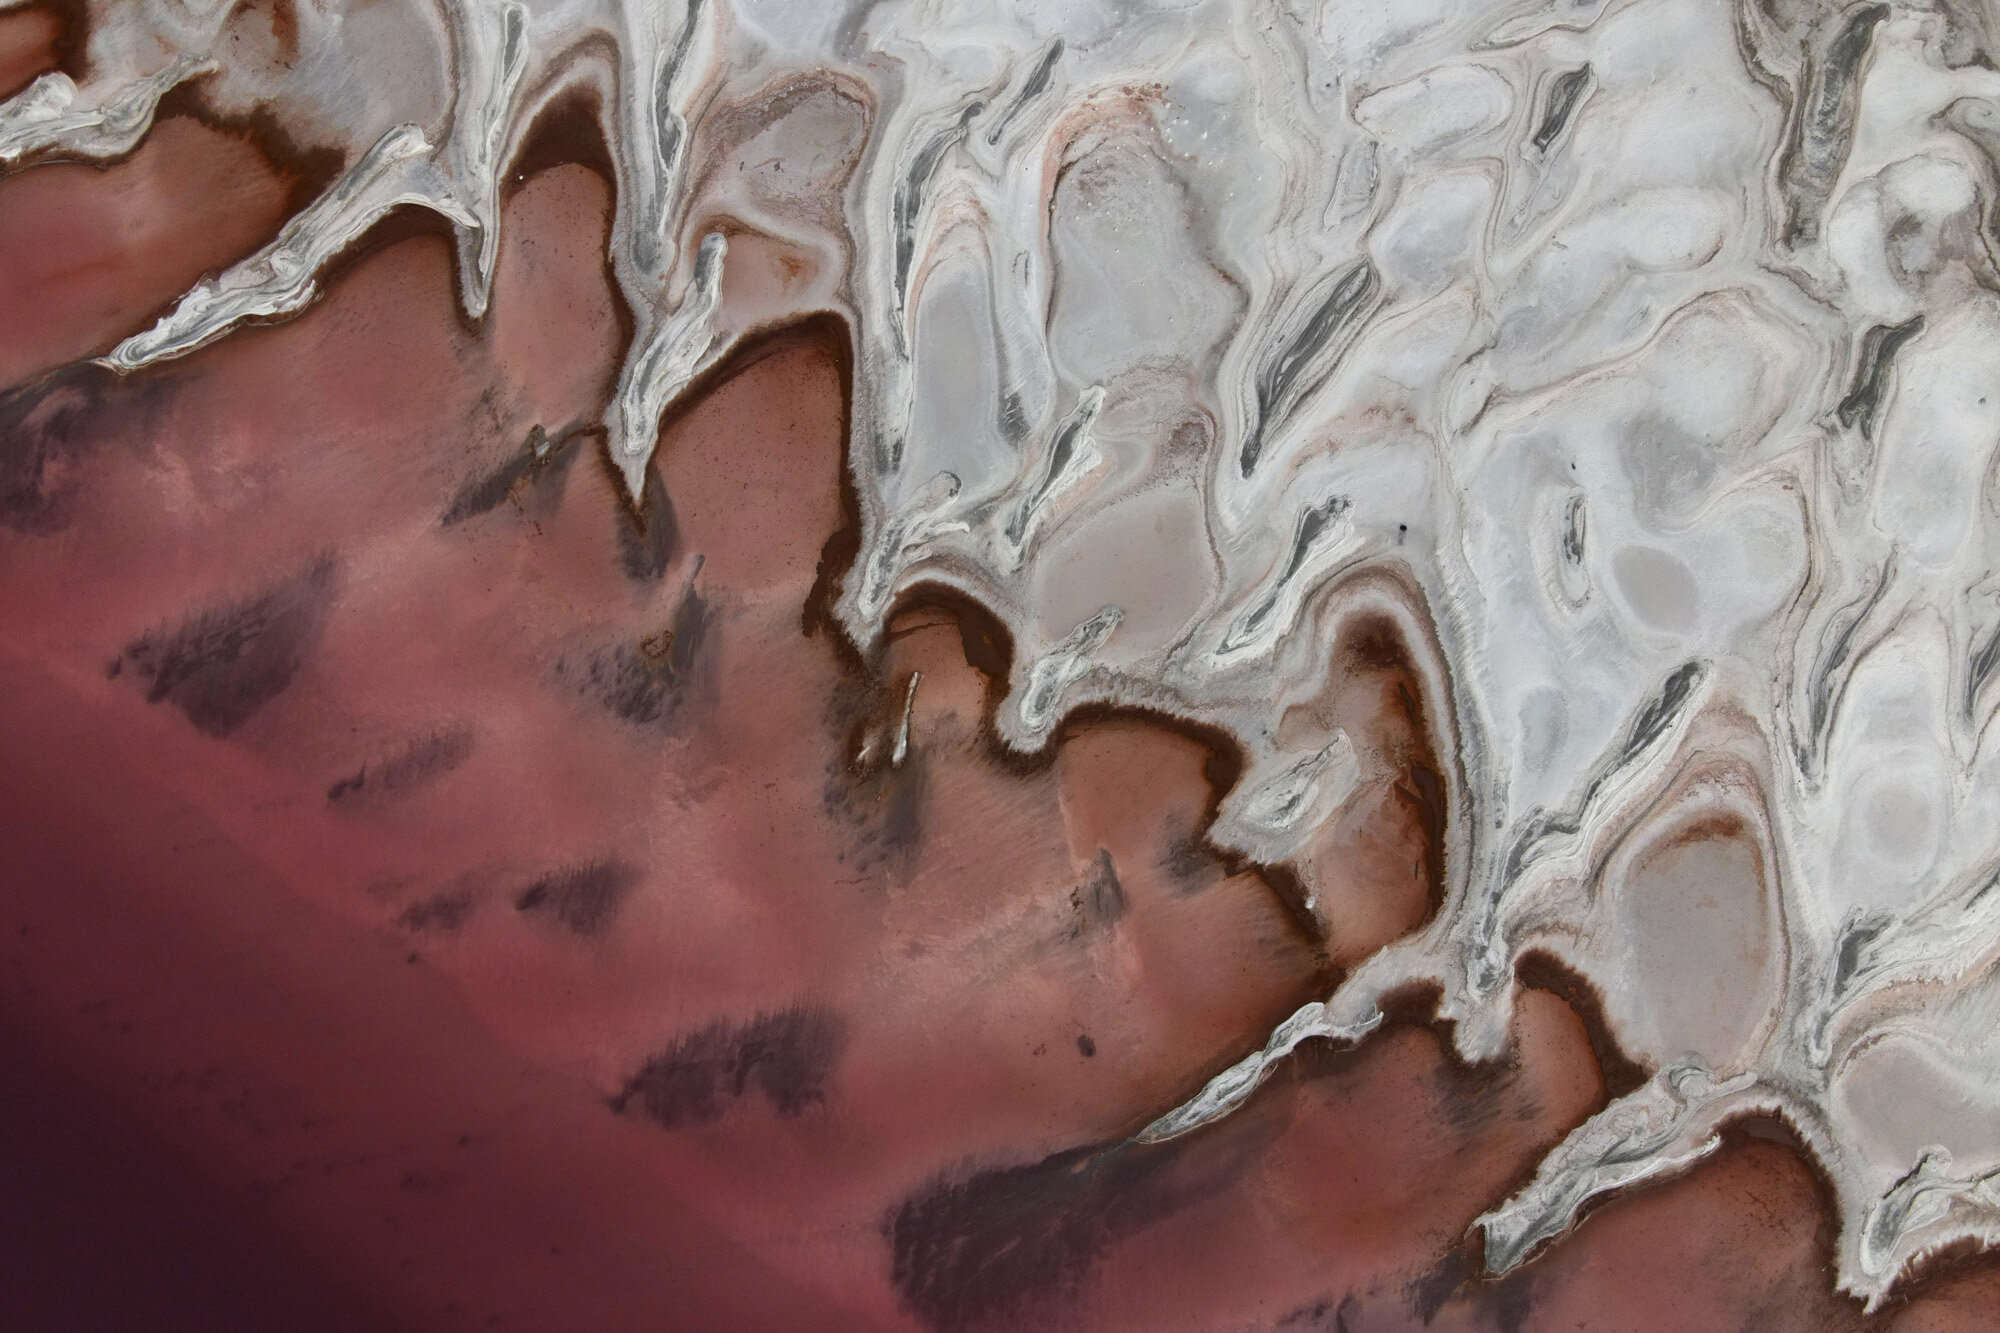 This image shot from a drone shows a reddish tint along the shore of the Great Salt Lake in Howell, Utah, on Oct. 8, 2020. The red hue of the north arm of the lake comes from a type of bacteria, known as halophilic bacteria, that flourishes when the salt level rises. (AP Photo/Julio Cortez)